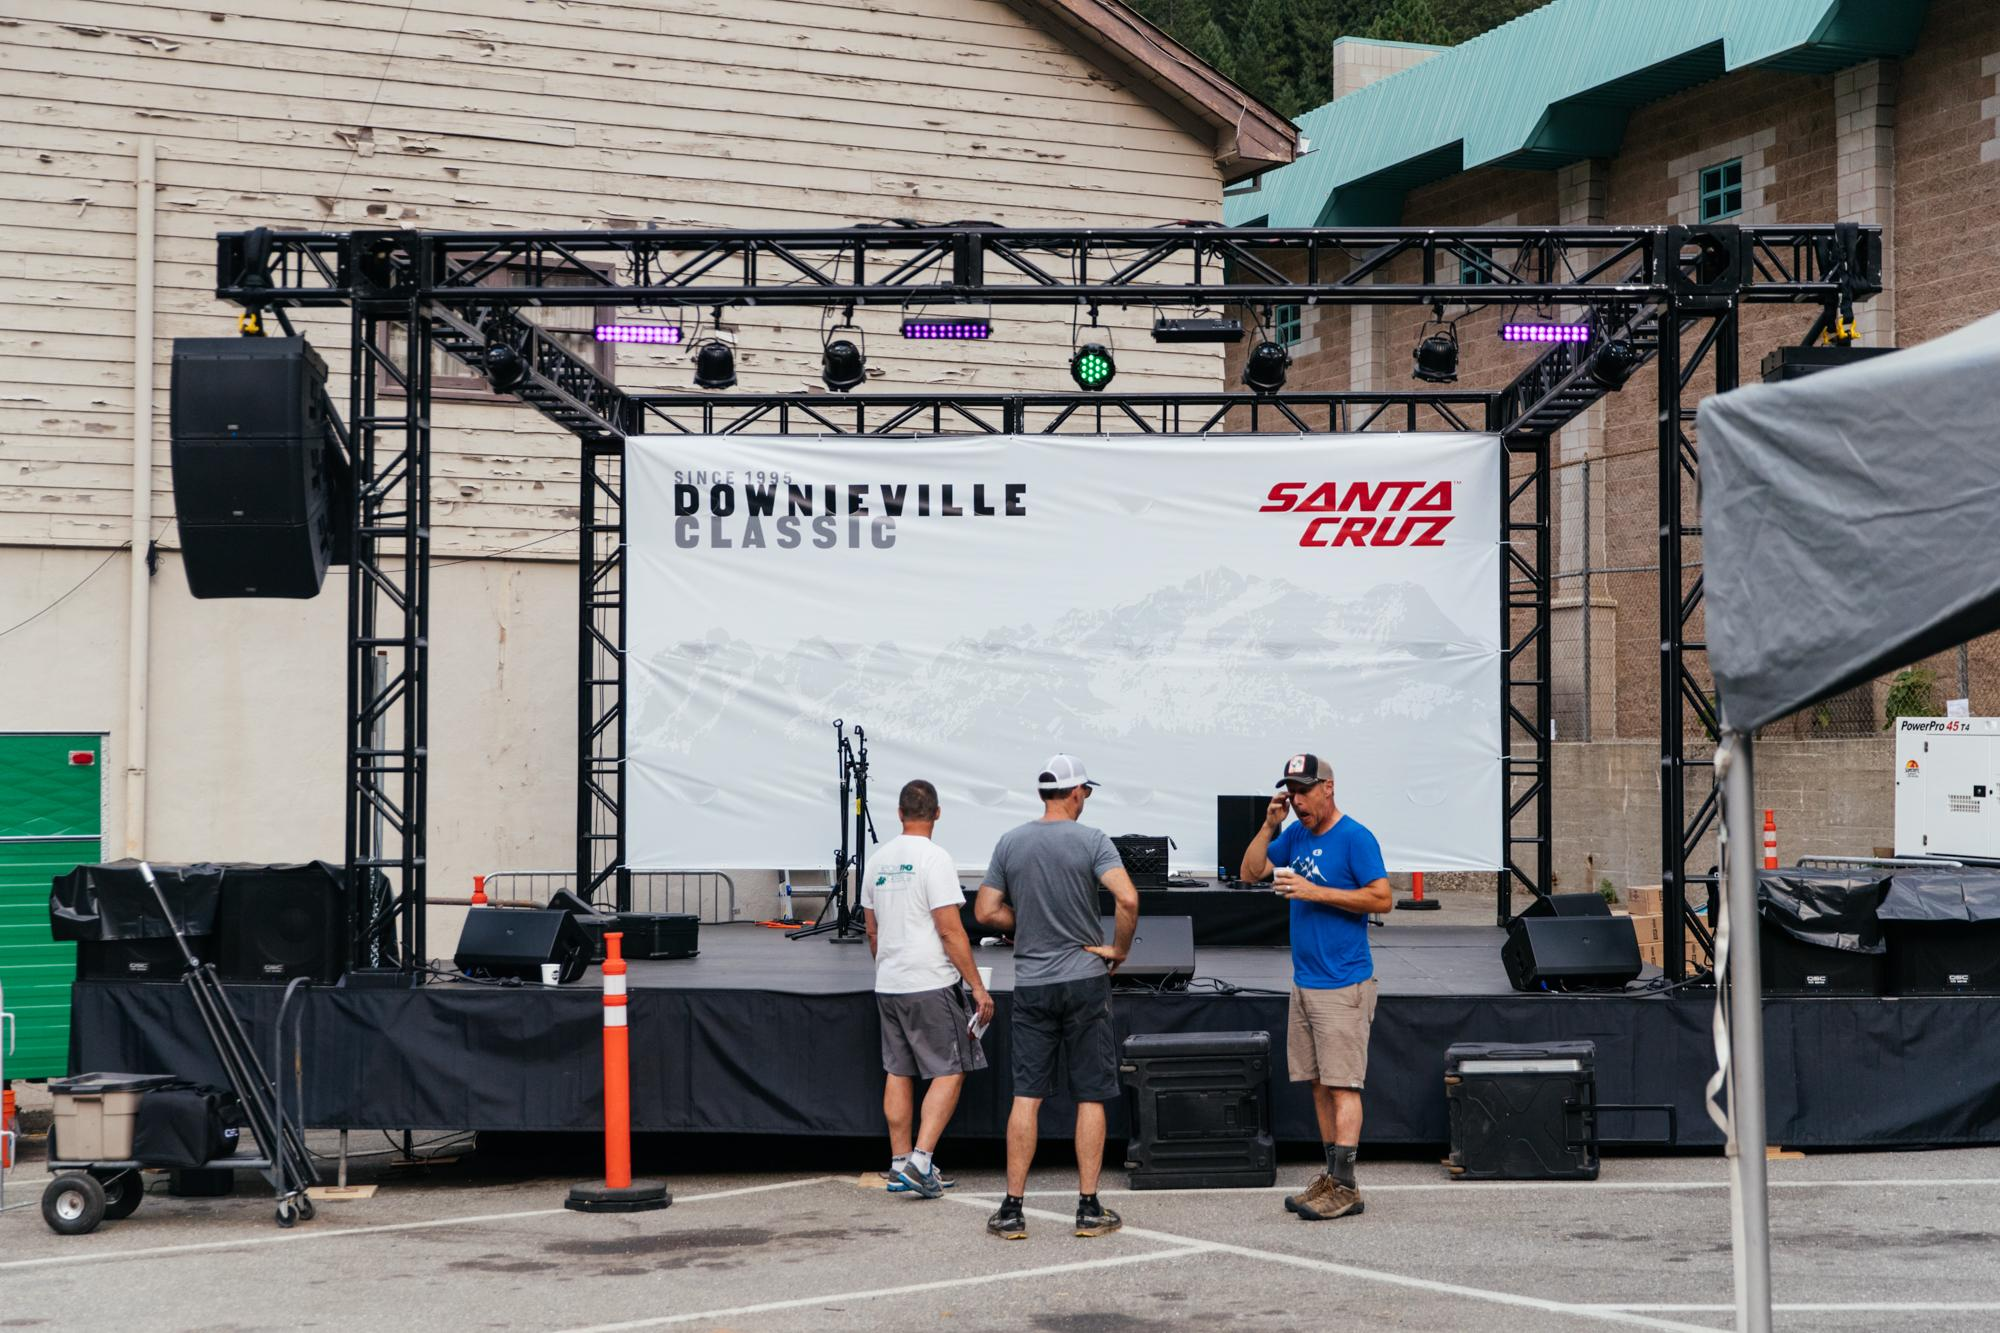 Downieville Stage